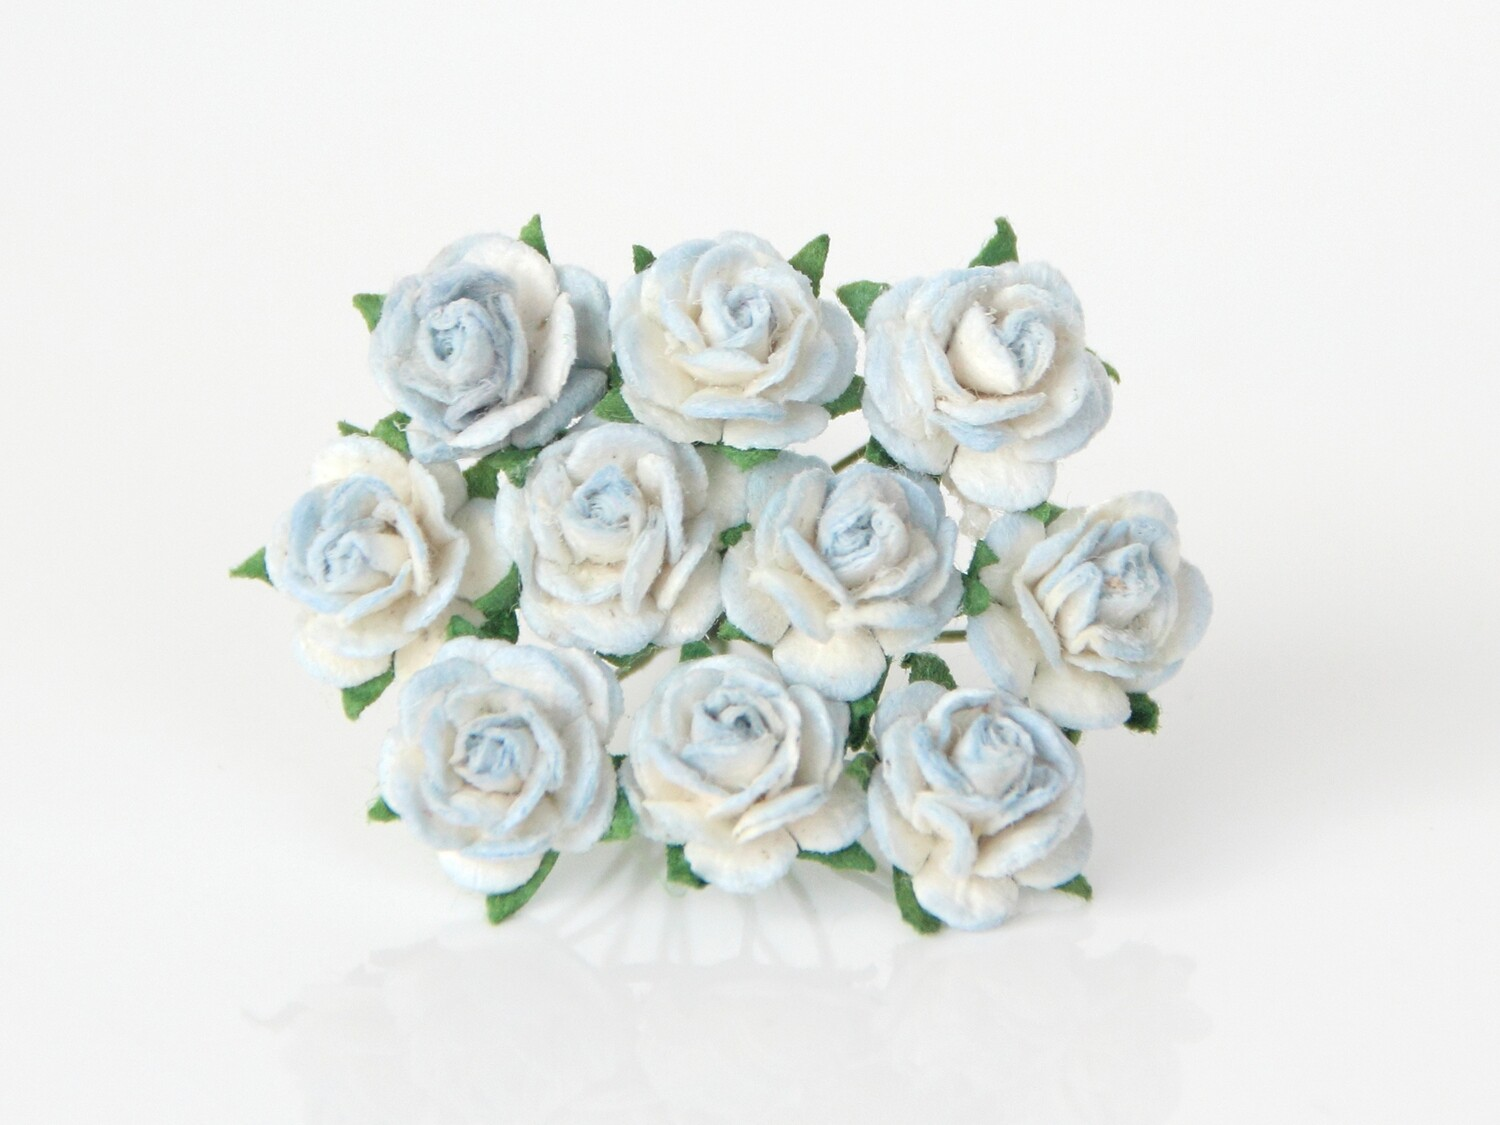 More Roses 10mm - Click to Select